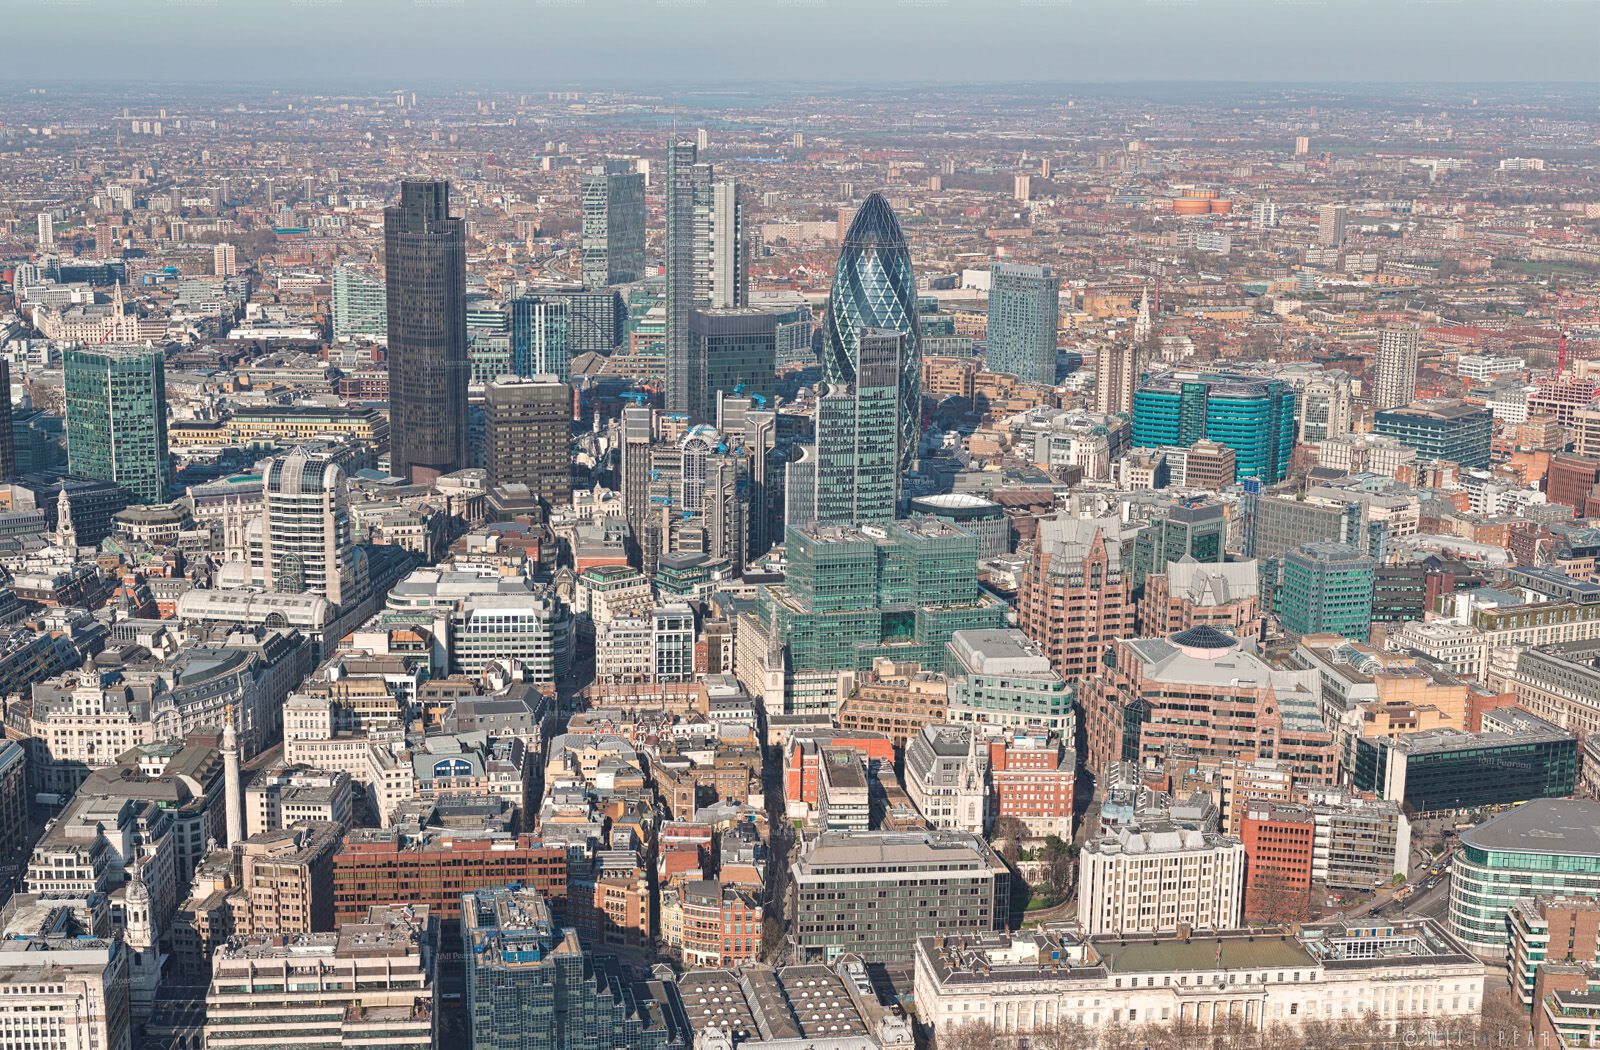 Gigapixel 360 Panorama from the Shard